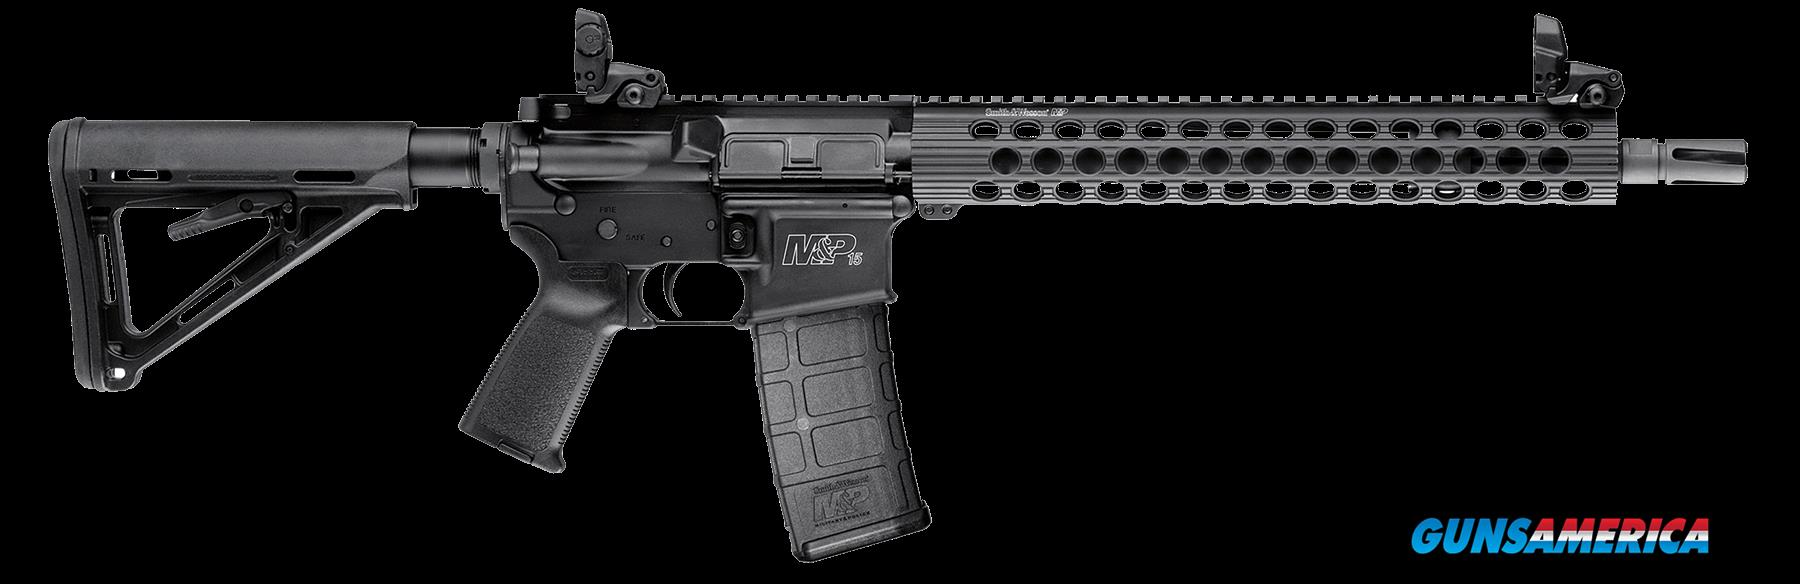 "Smith & Wesson 811024 M&P15 Carbine TS Semi-Automatic 223 Remington/5.56 NATO 16"" 30+1 Magpul MOE  Guns > Rifles > S Misc Rifles"